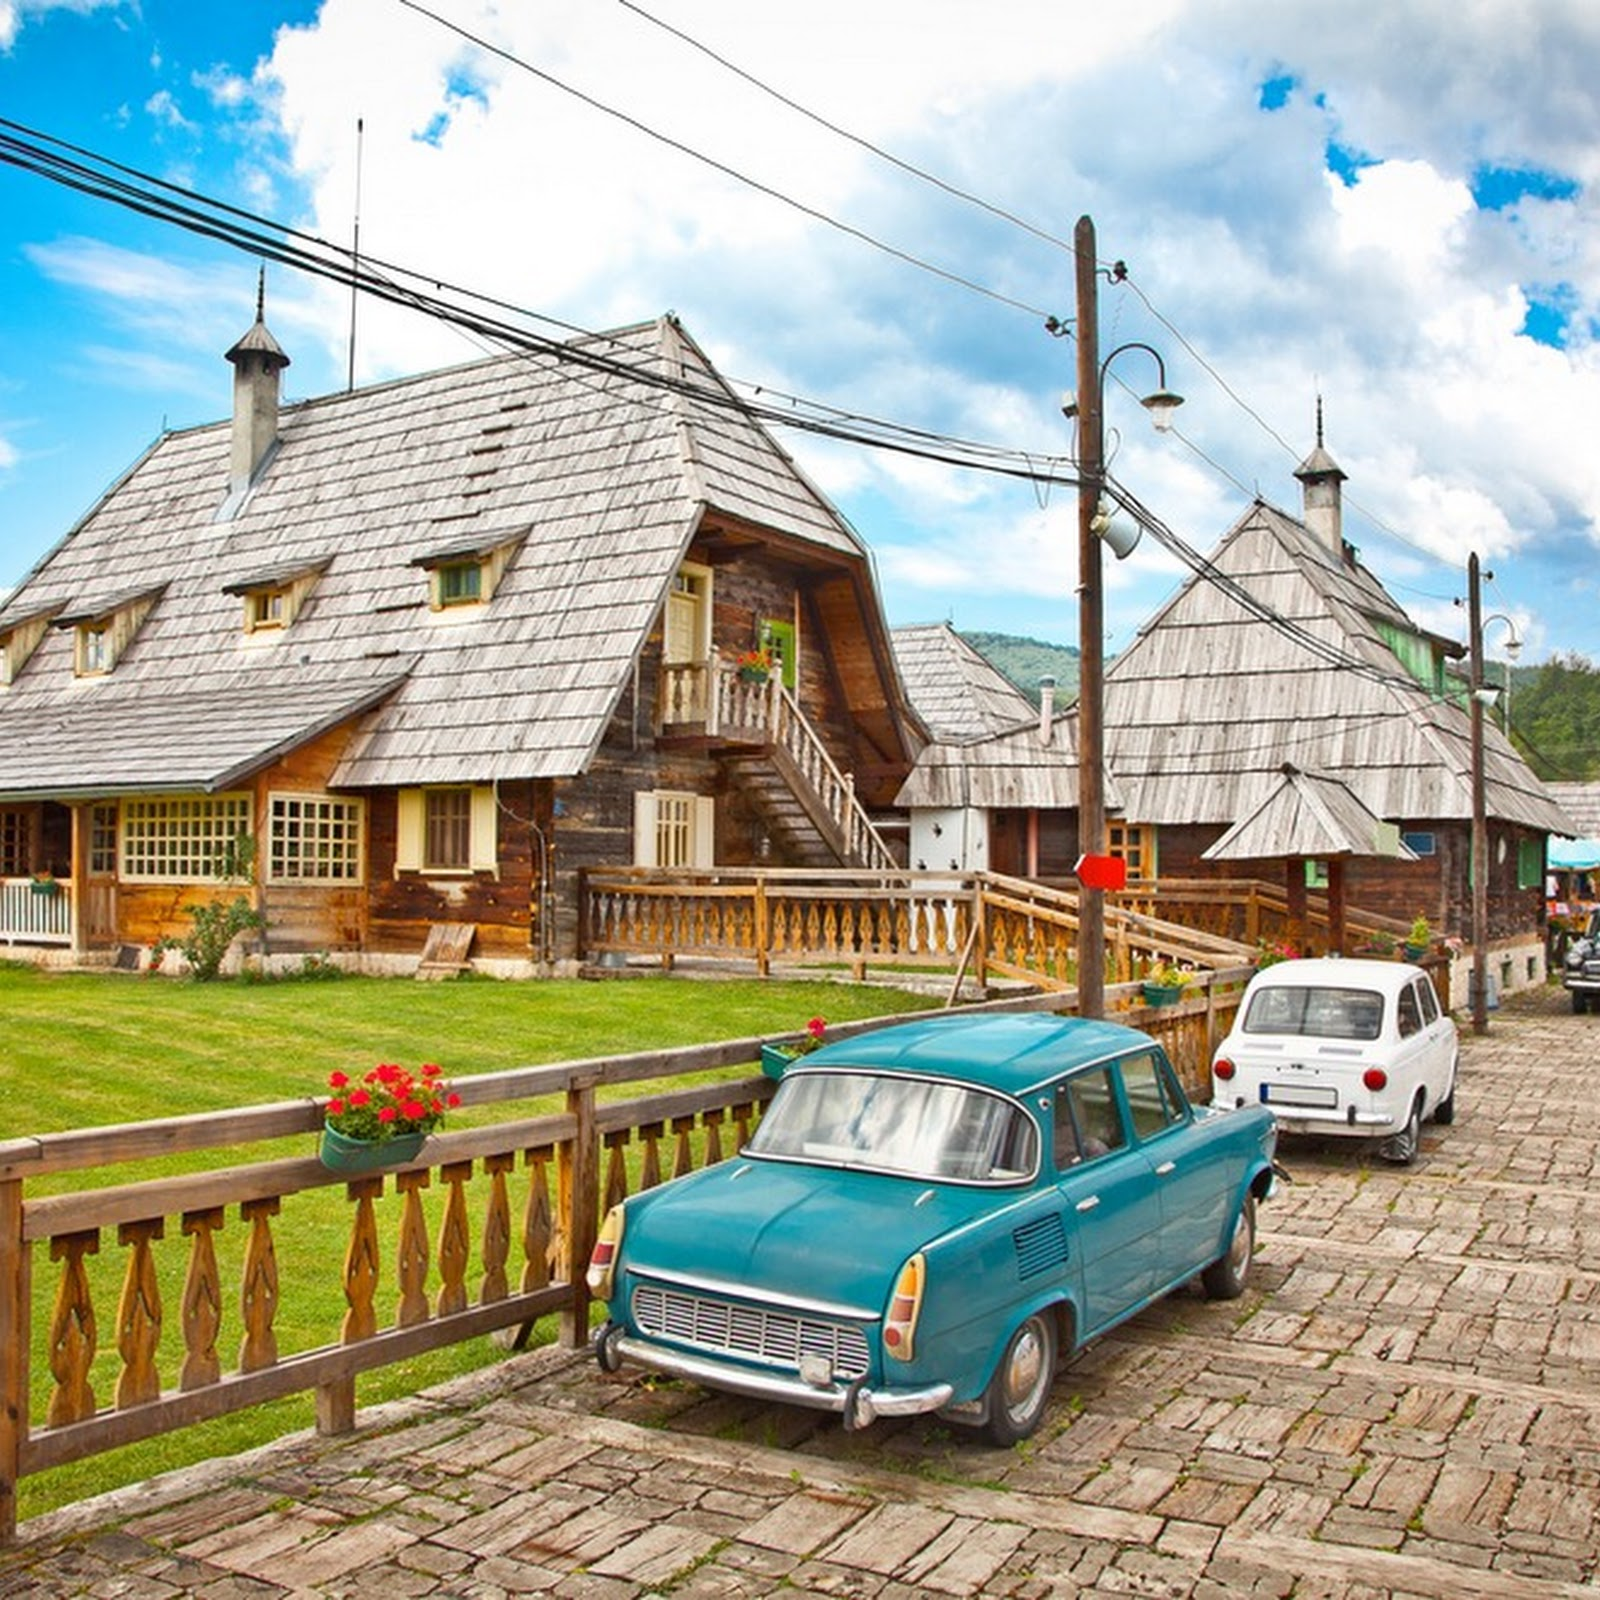 Drvengrad: A Traditional Serbian Village That's Actually A Movie Set